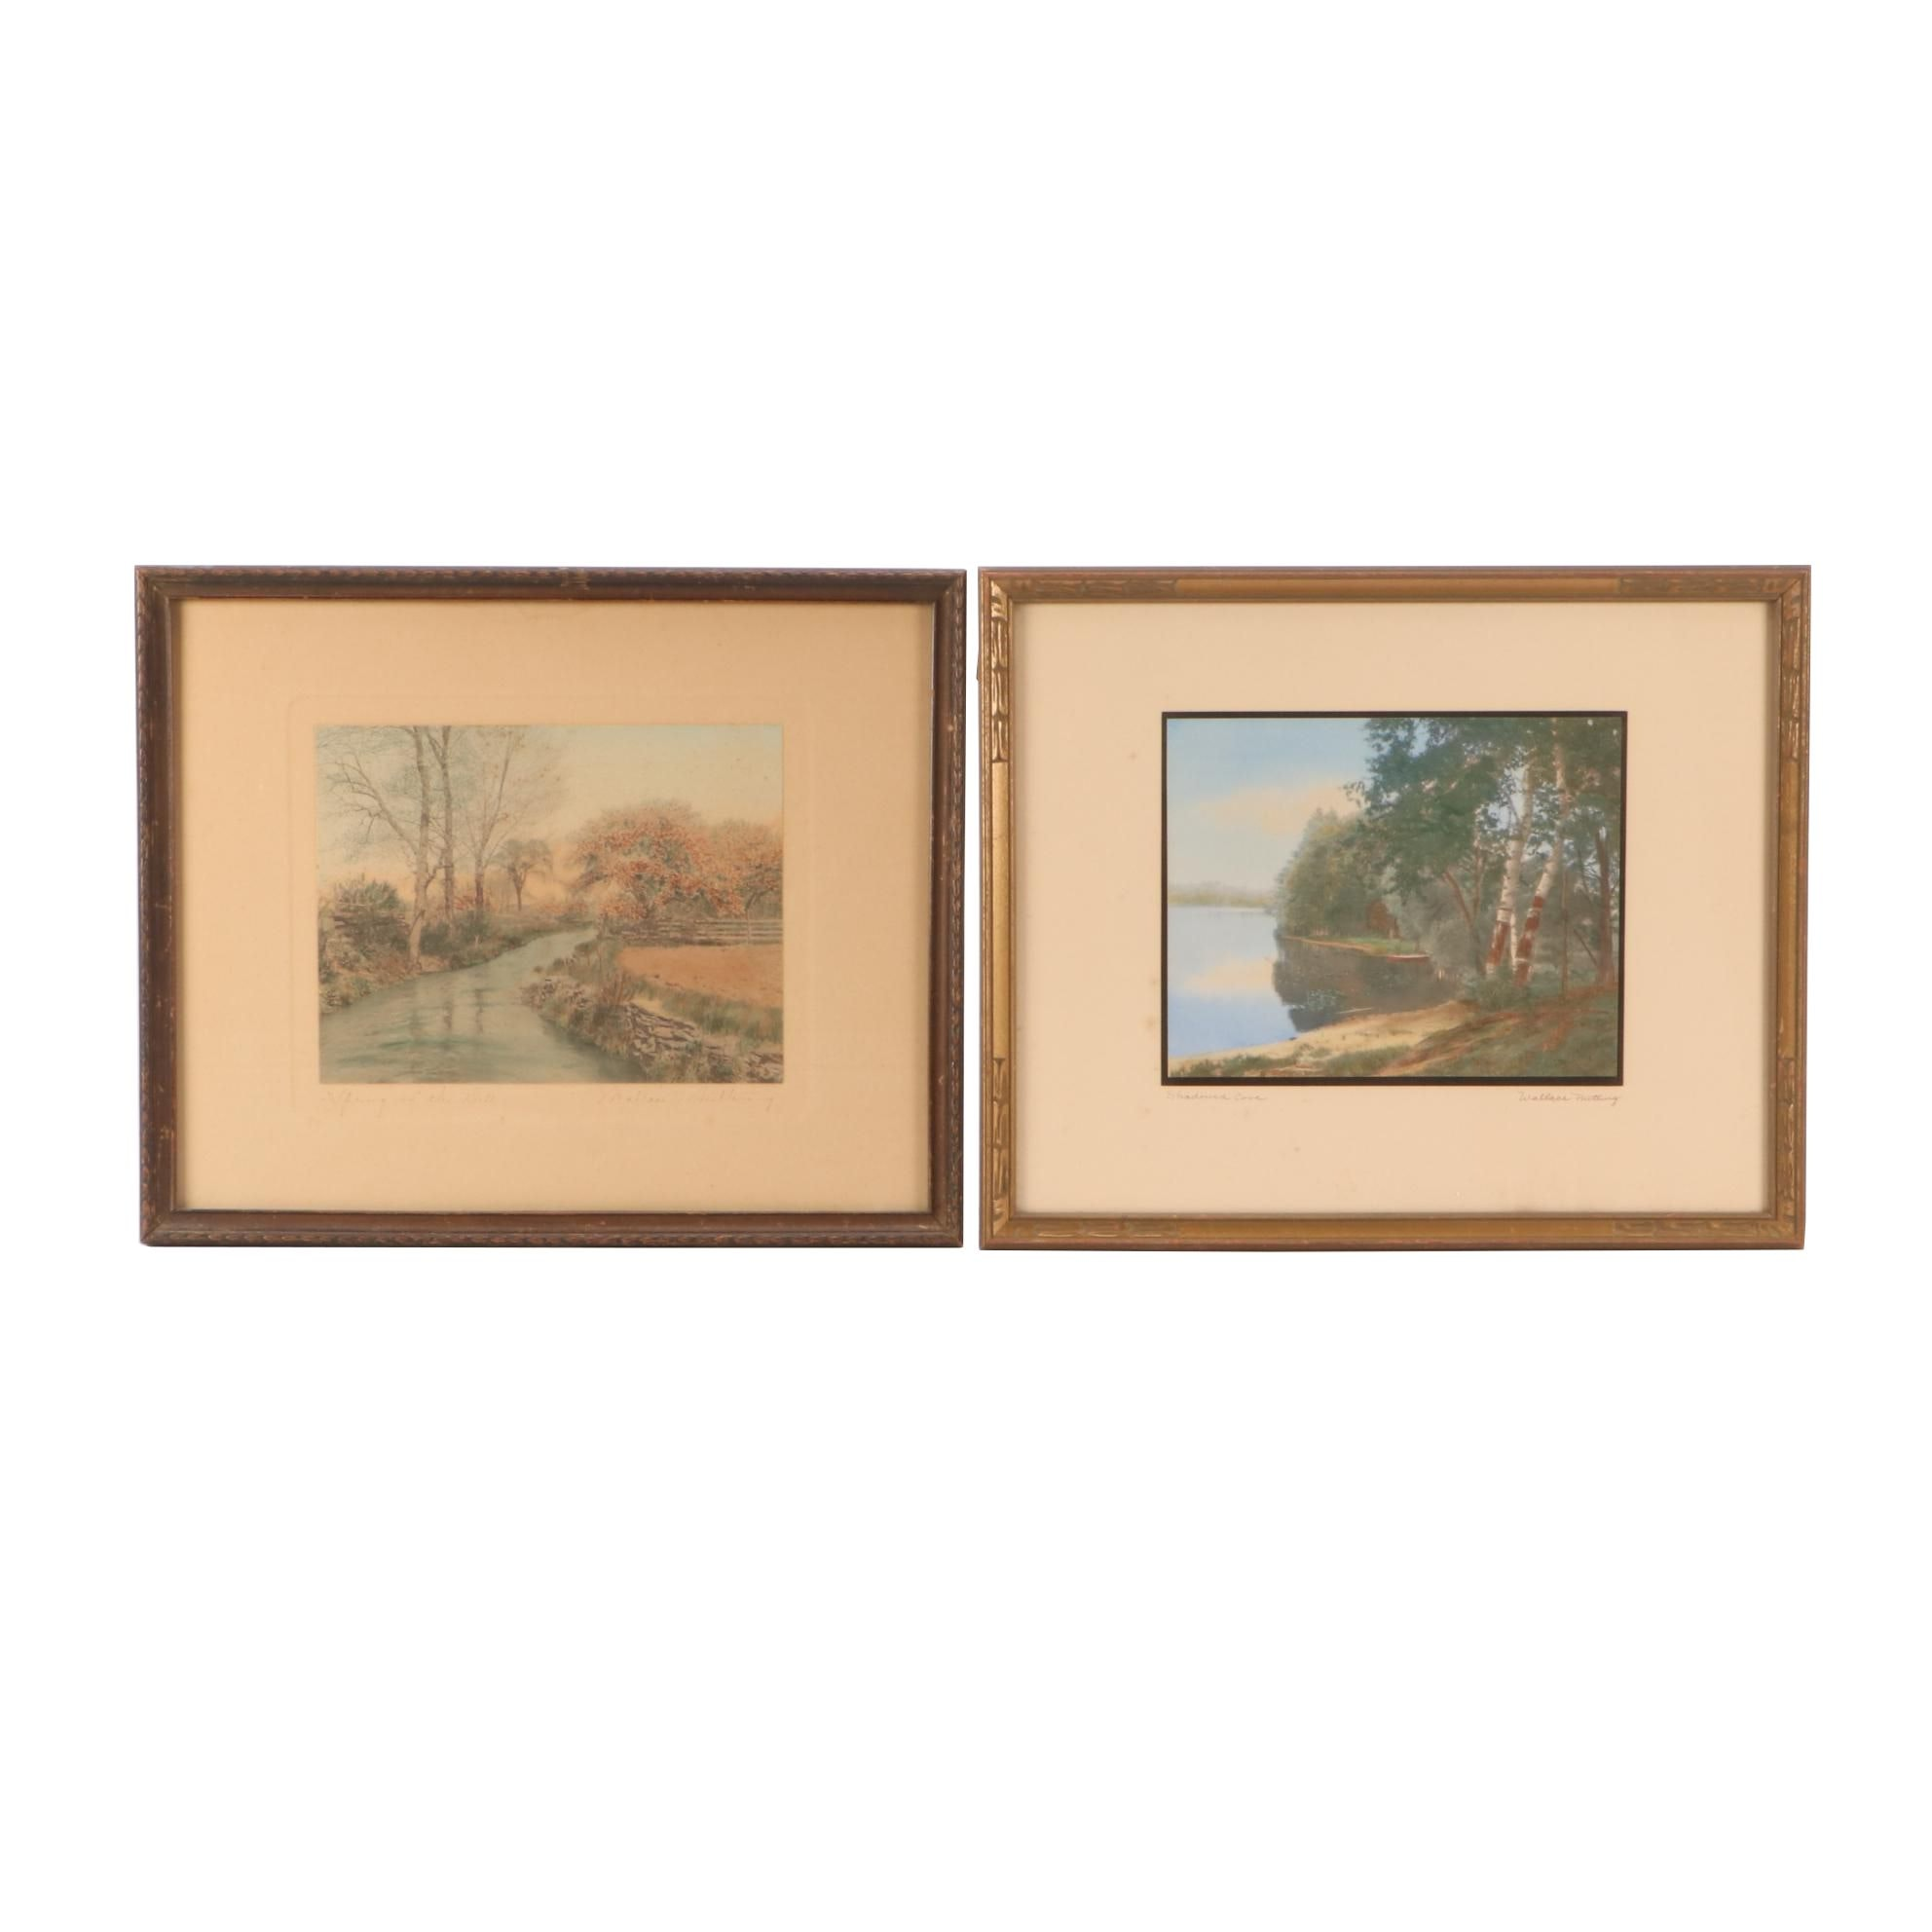 Wallace Nutting Hand-Colored Photogravures